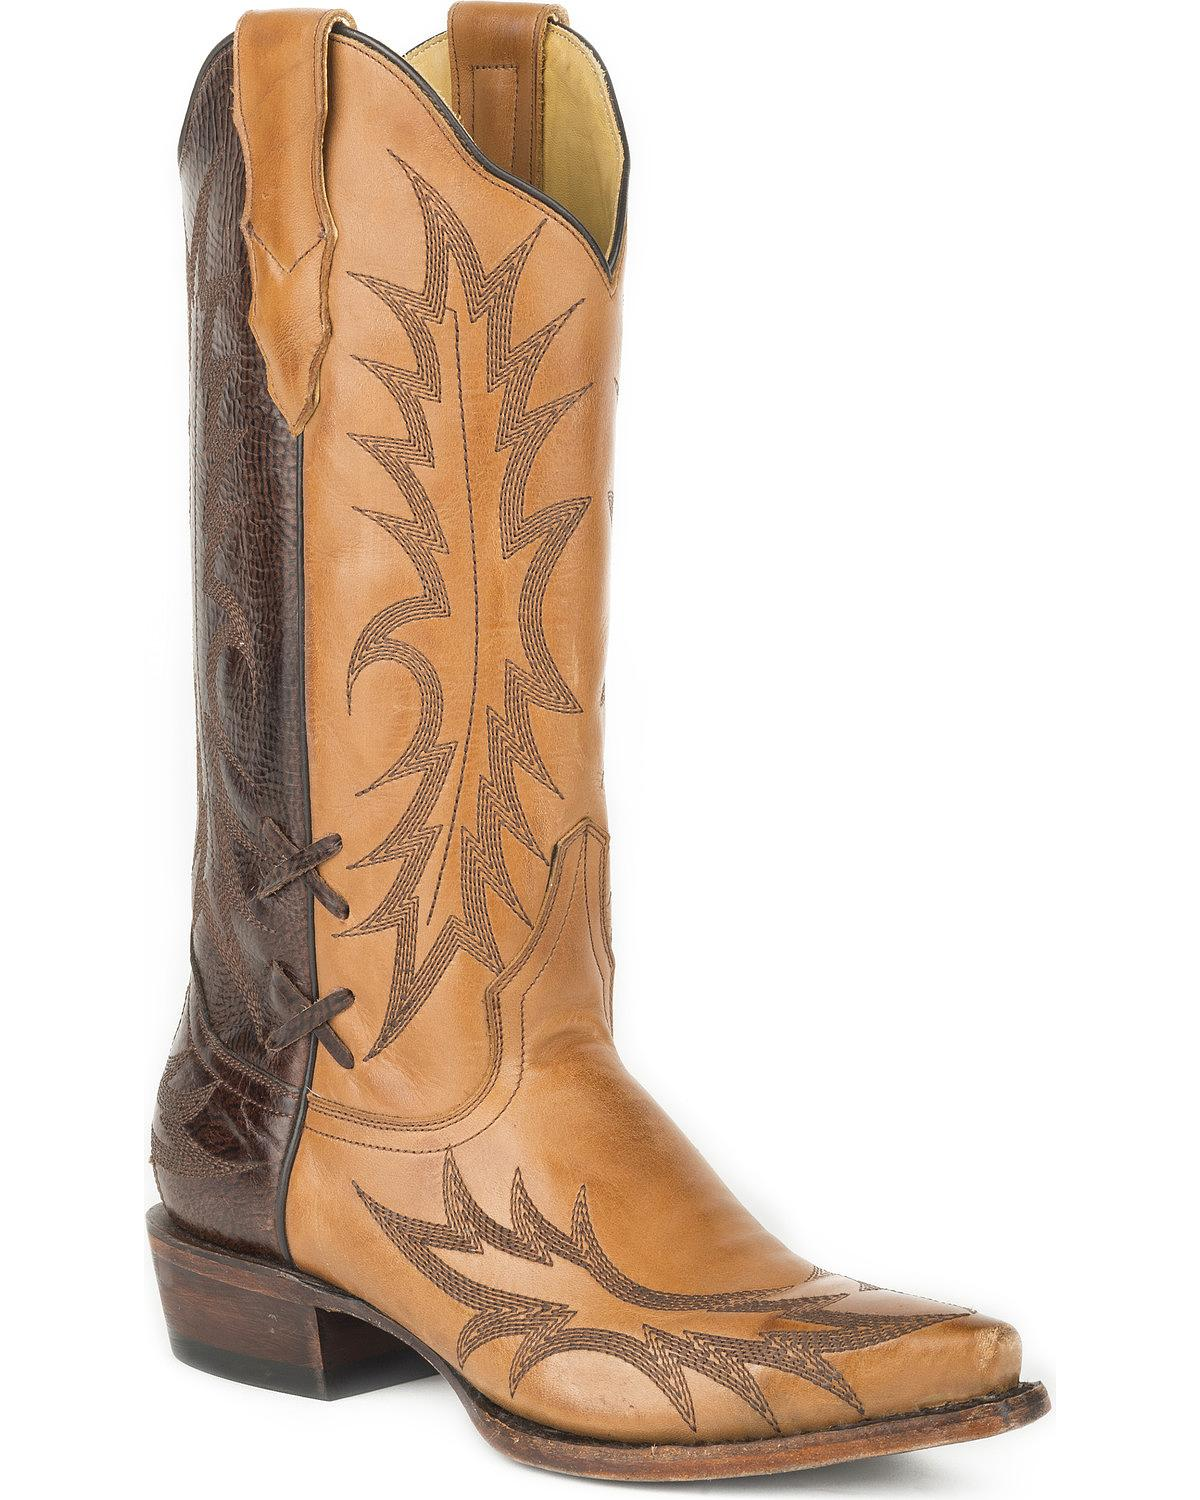 Stetson Women's Quinn Two Tone Western Boot Snip Toe - 12-021-6105-1090 Br